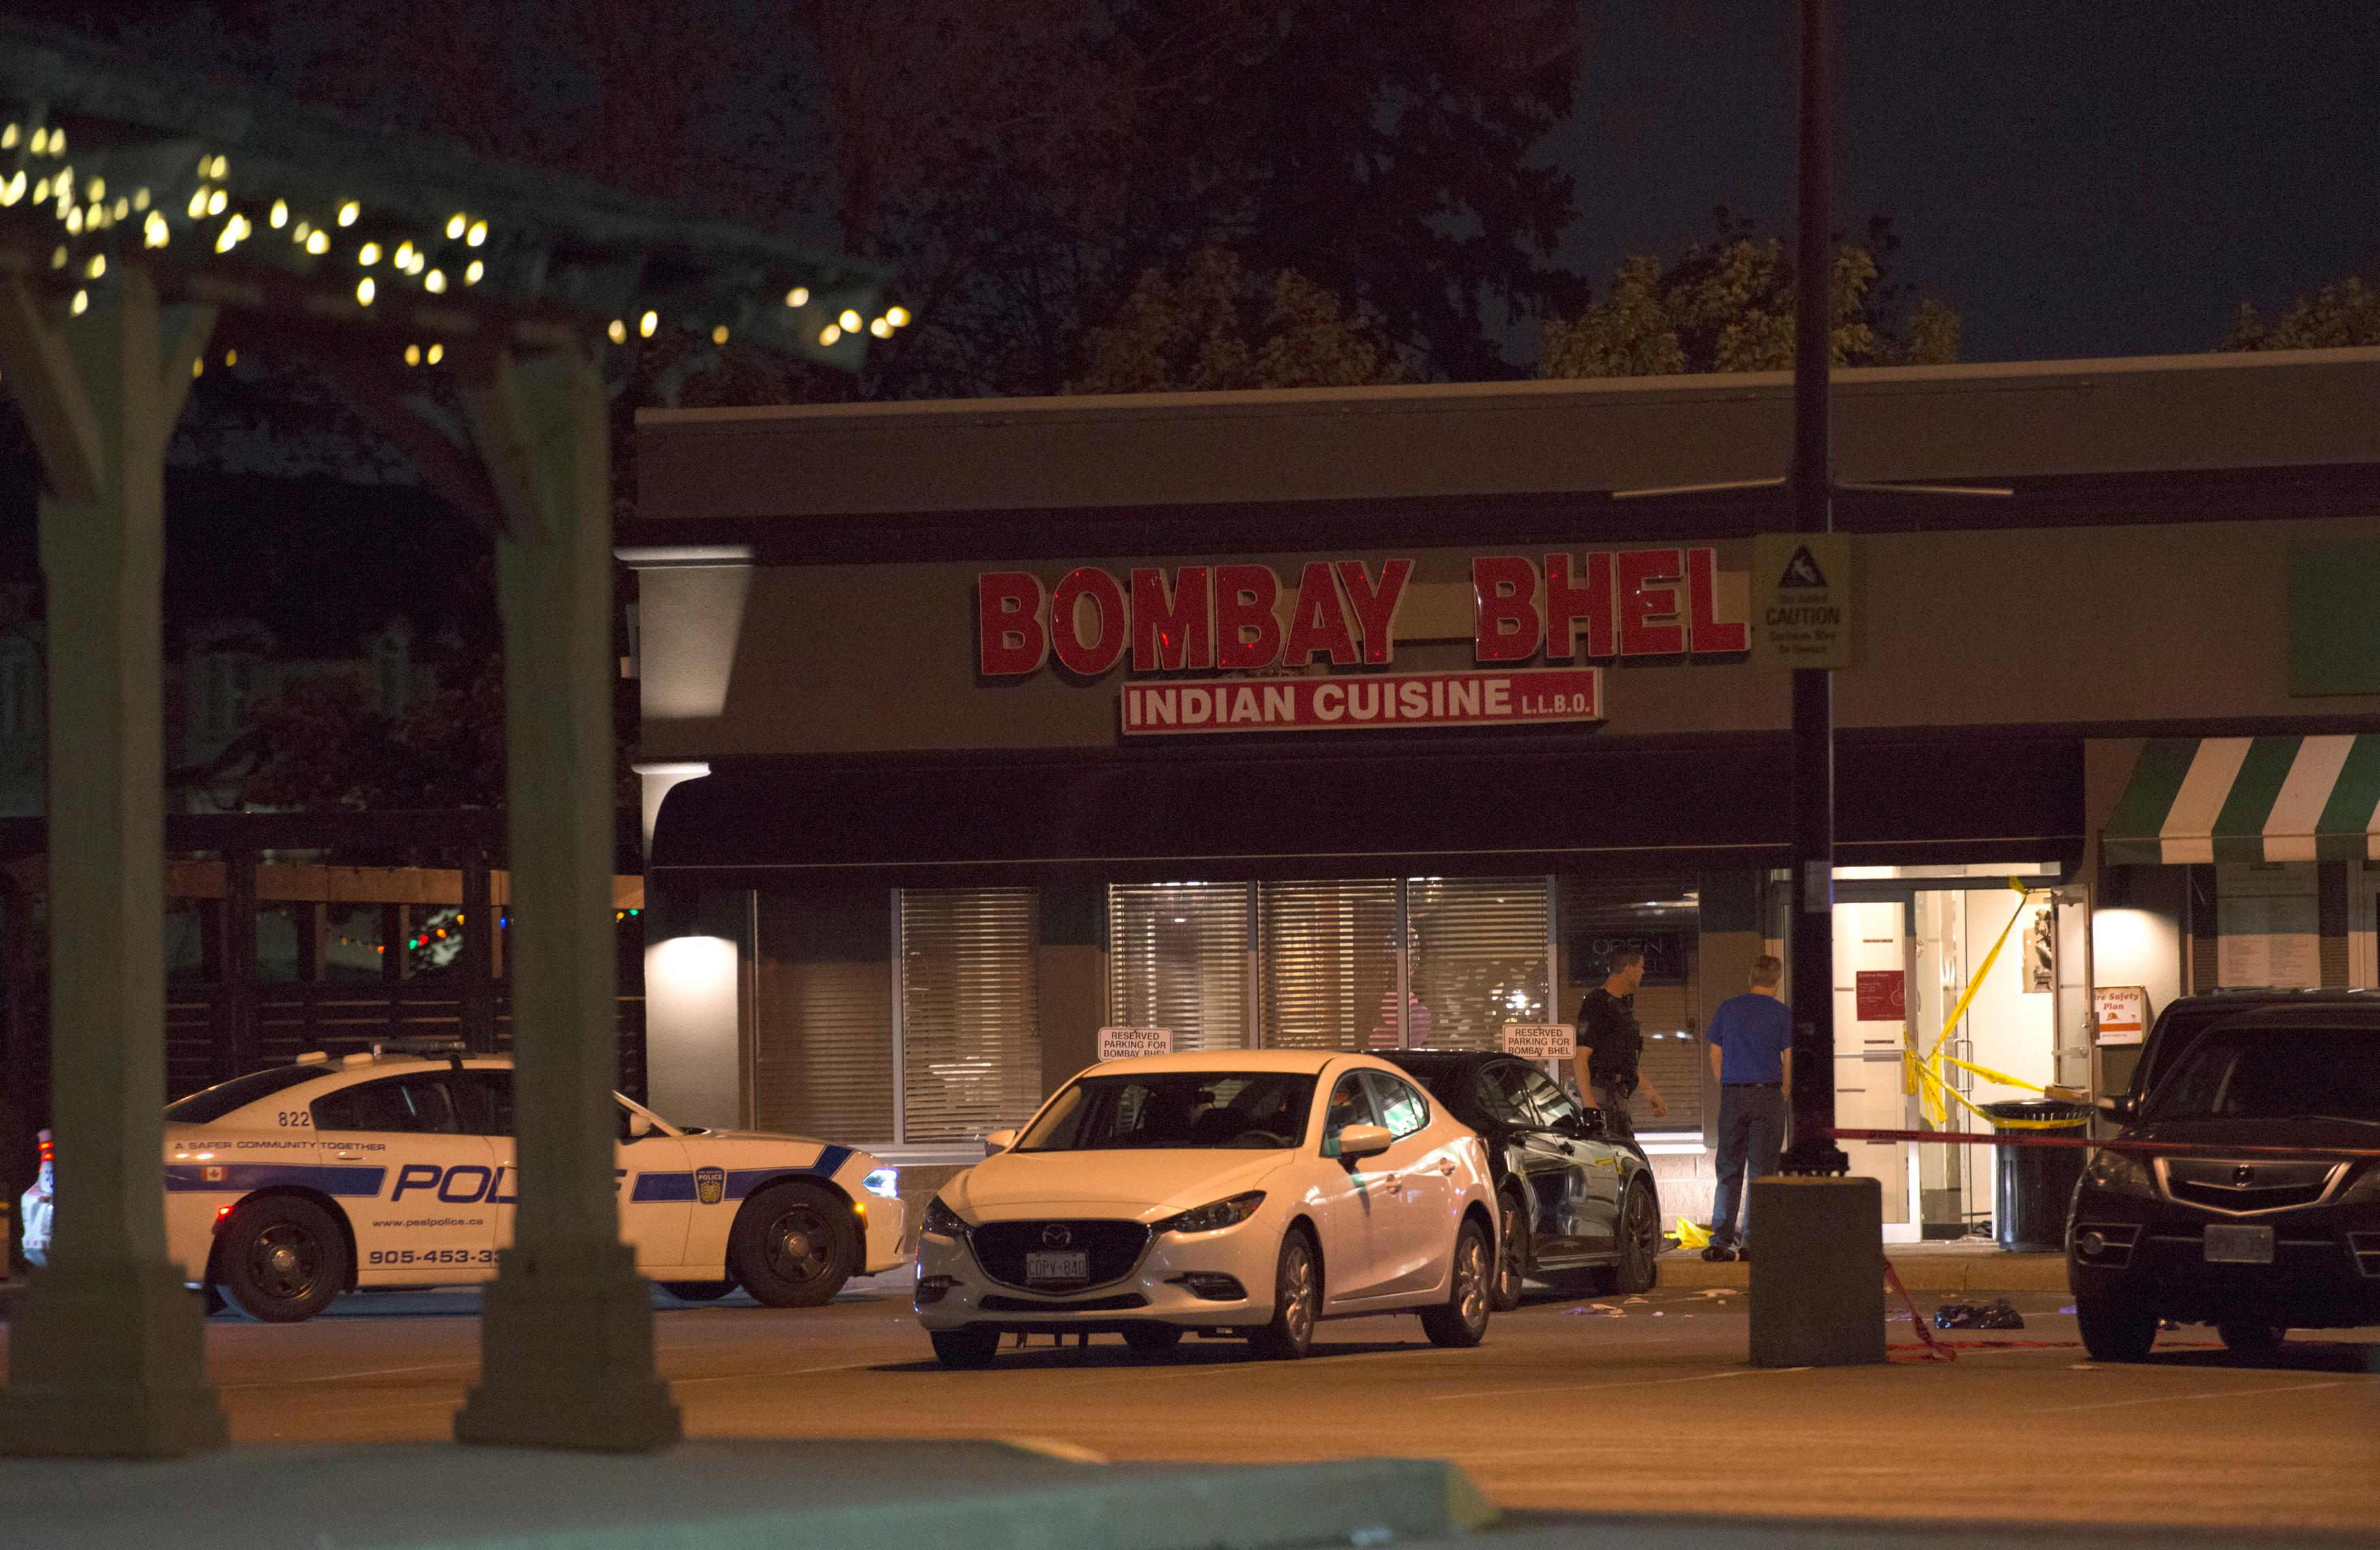 Police stand outside the Bombay Bhel restaurant in Mississauga, Canada Friday, May 25, 2018. Canadian police say an explosion set off deliberately in a restaurant has wounded a number of people. (Doug Ives/The Canadian Press via AP)